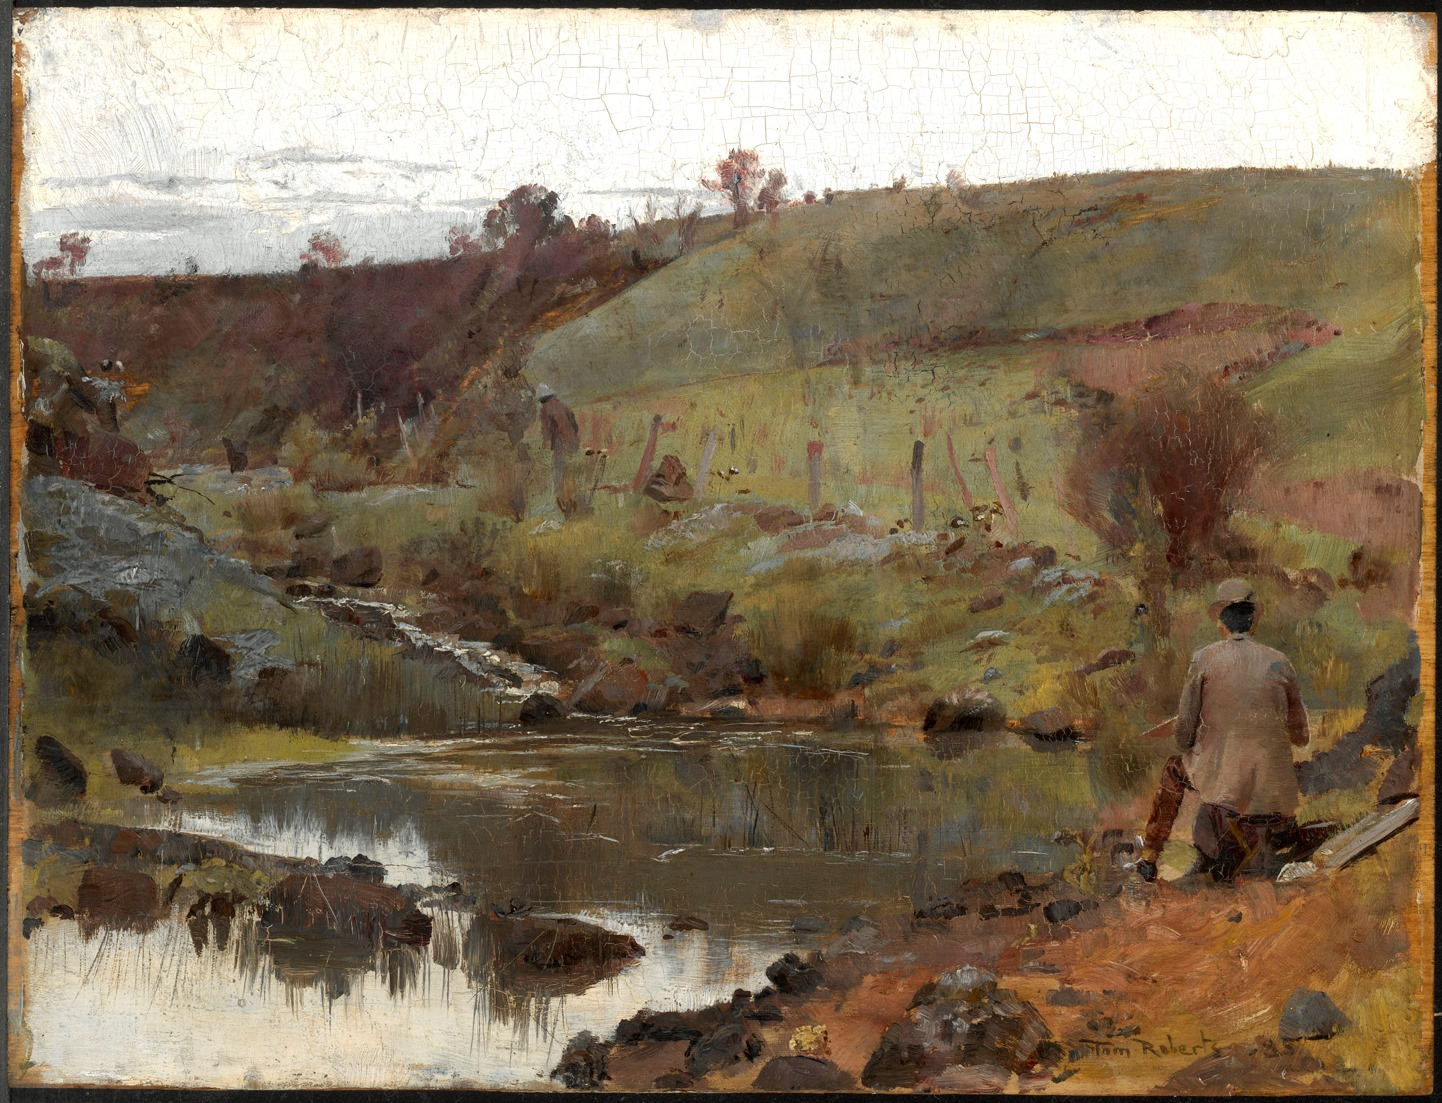 Tom Roberts  A Quiet Day on Darebin Creek , 1885 Oil on wood panel 26.4 × 34.8 cm National Gallery of Australia, Canberra Purchased 1969 © National Gallery of Australia, Canberra